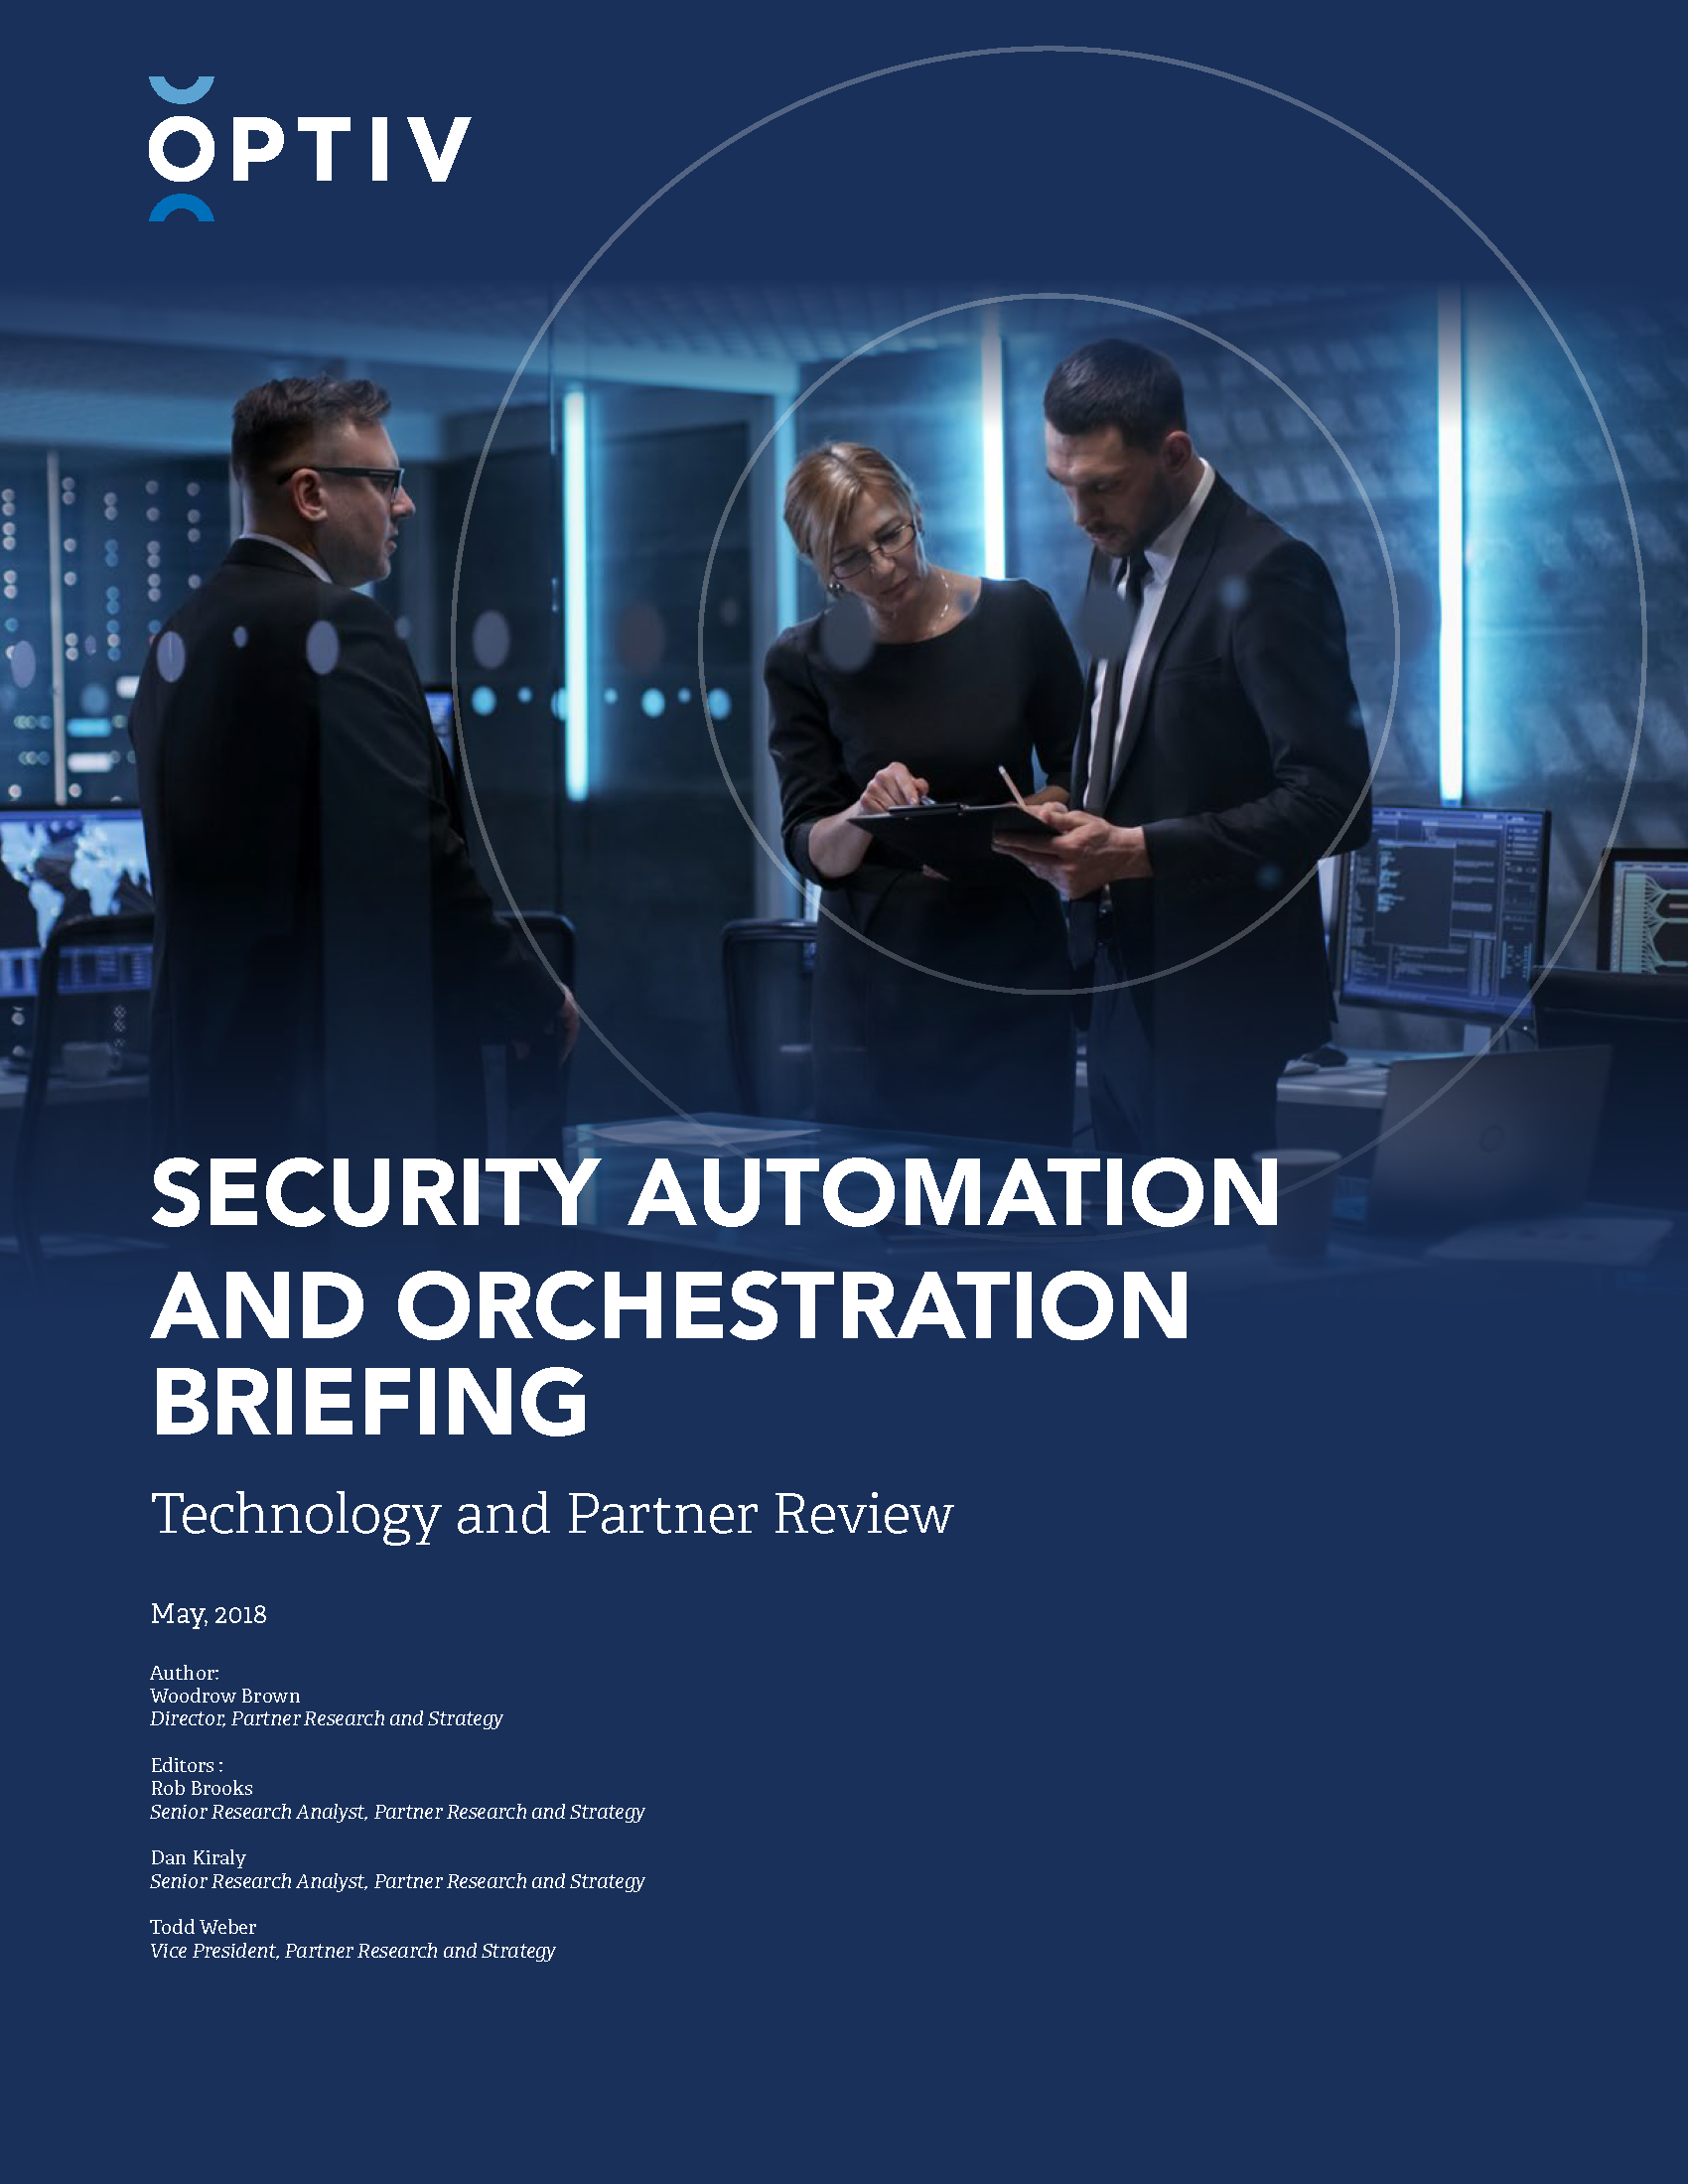 Security Automation and Orchestration Briefing: Technology and Partner Review